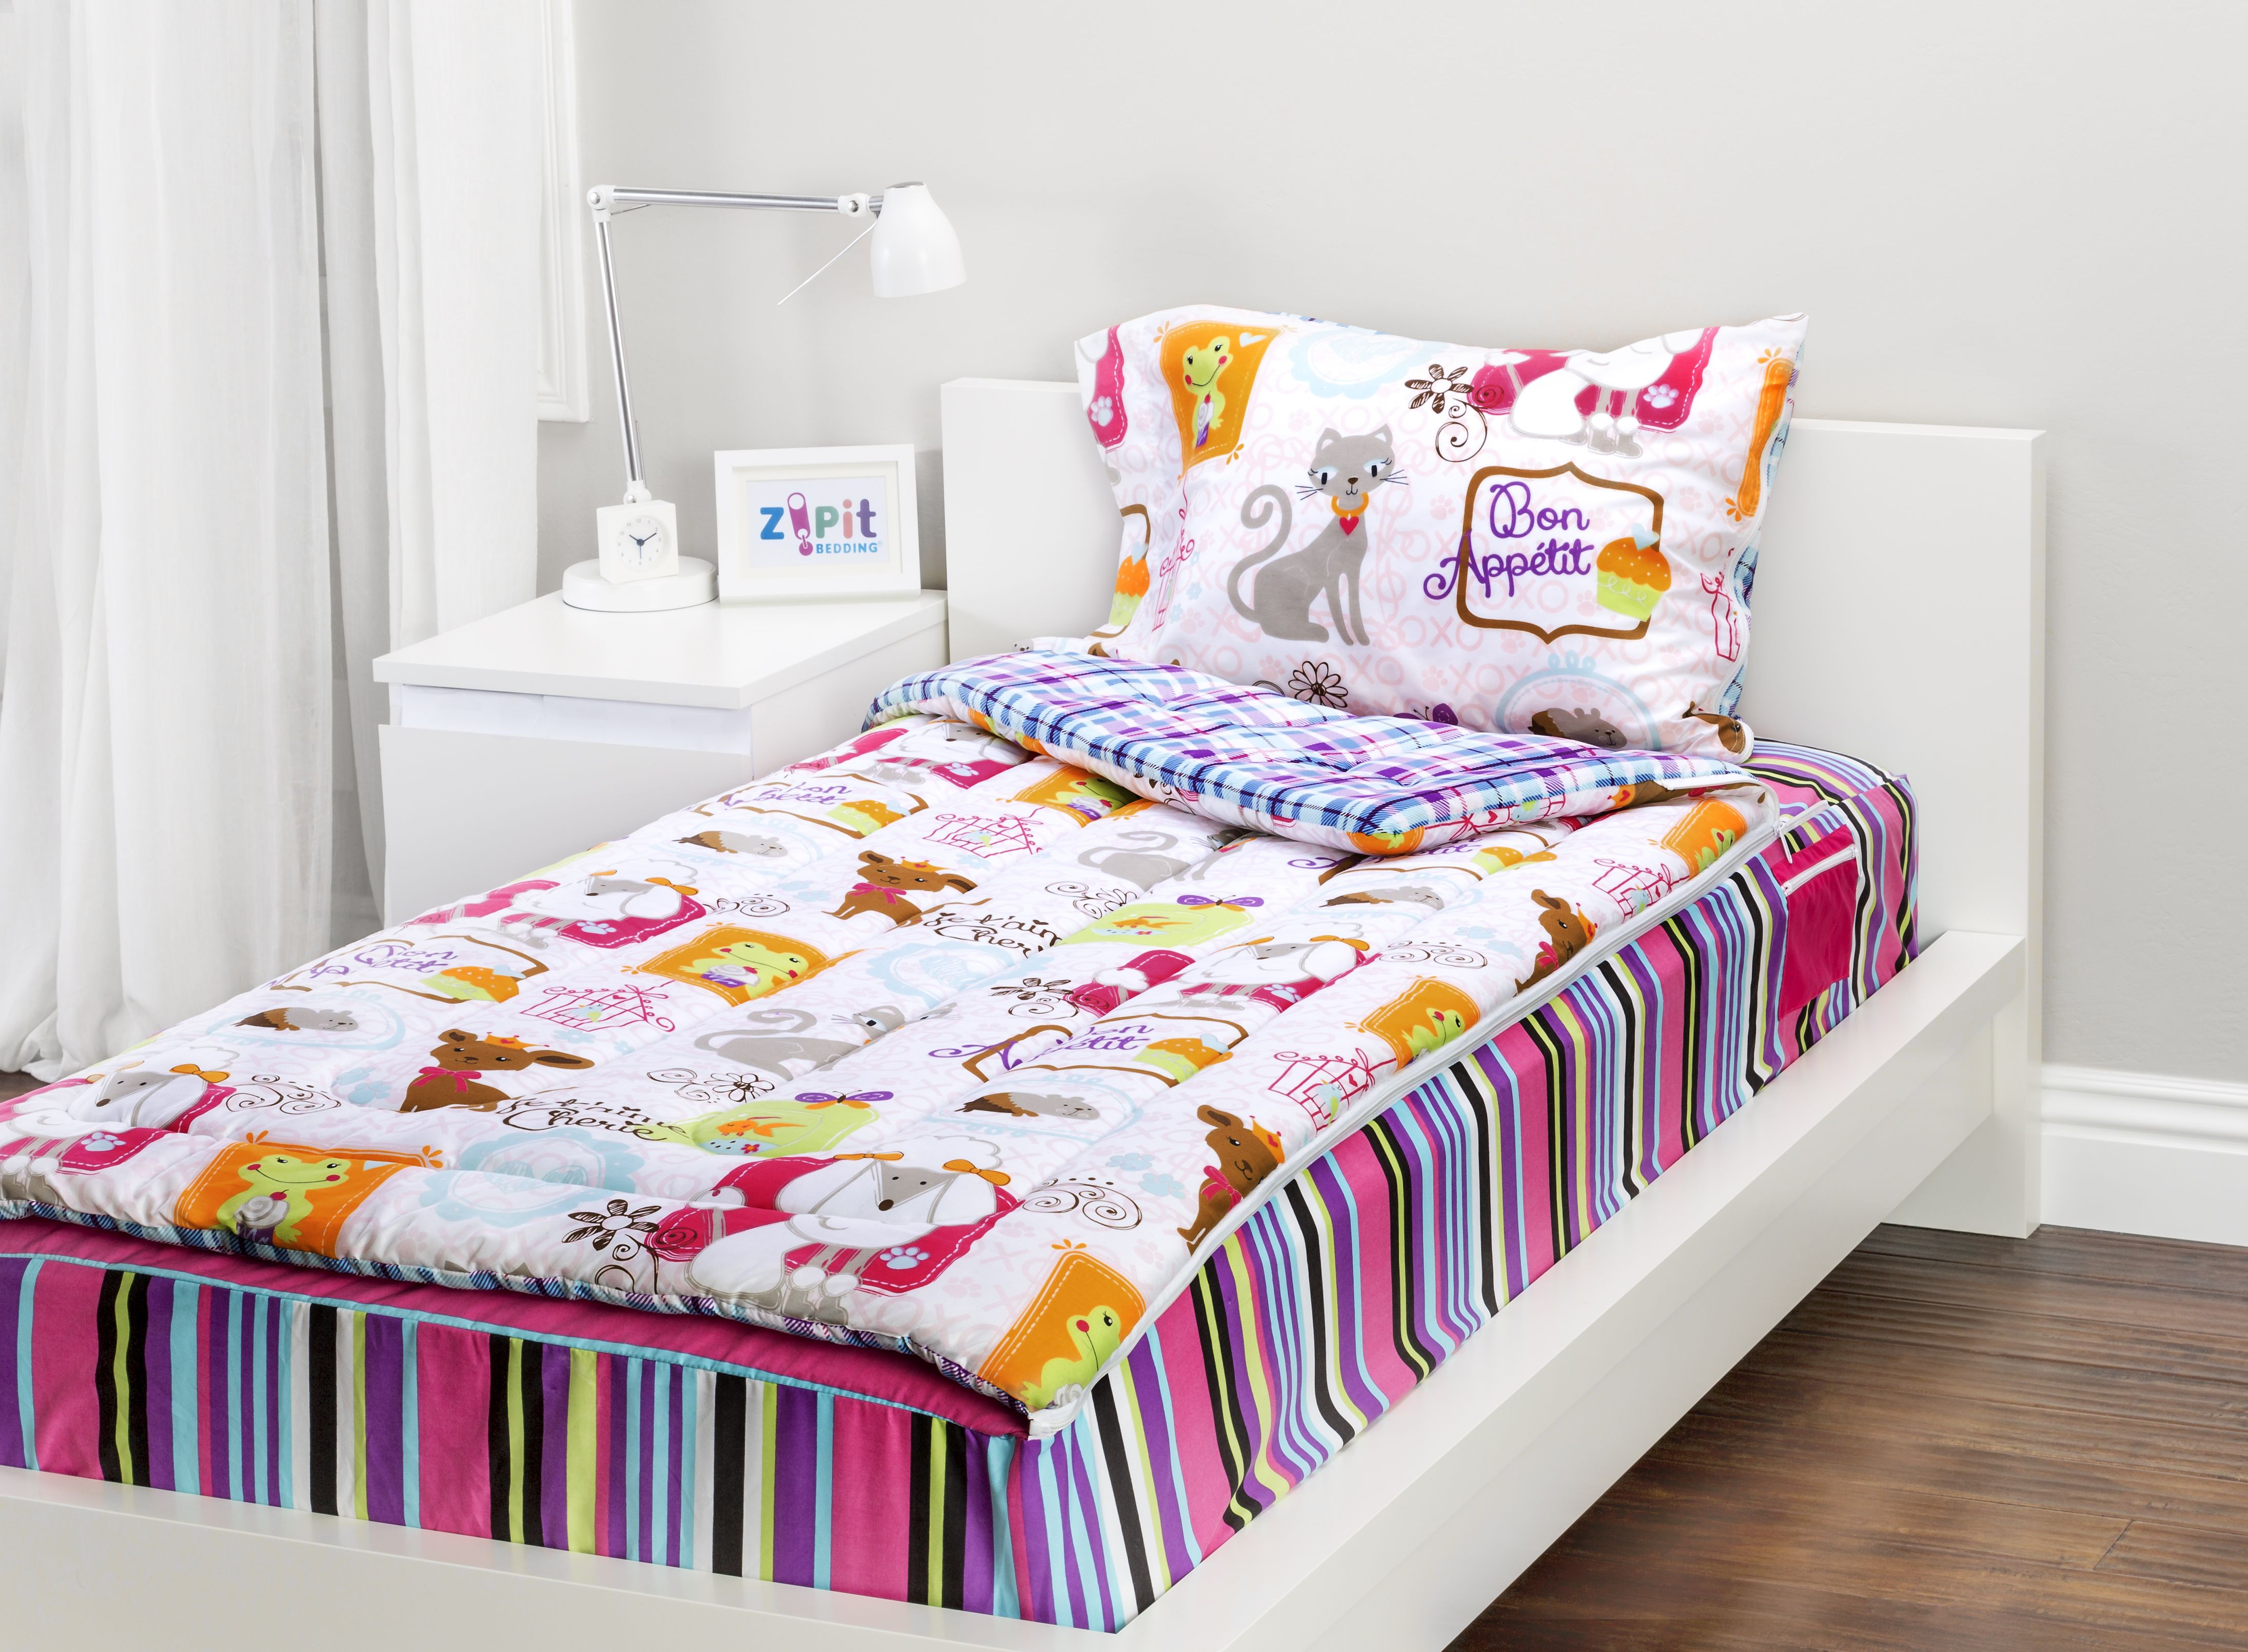 a8b43672f4f1da Zipit Bedding Mix  N Match with Sweet Stuff and Fantasy Forest! Zipit  Bedding is